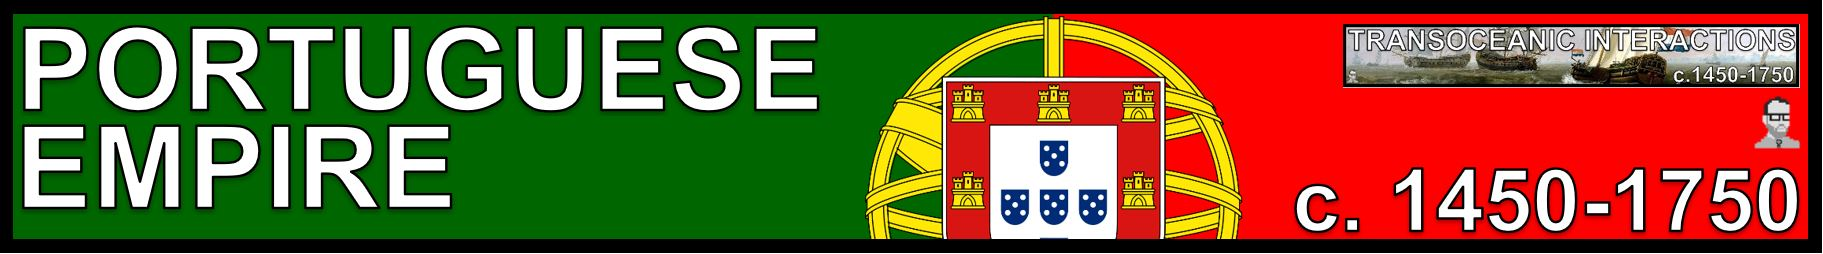 PORTUGUESE FLAG AP WORLD HISTORY MODERN FREEMANPEDIA TRANSOCEANIC INTERACTIONS.JPG